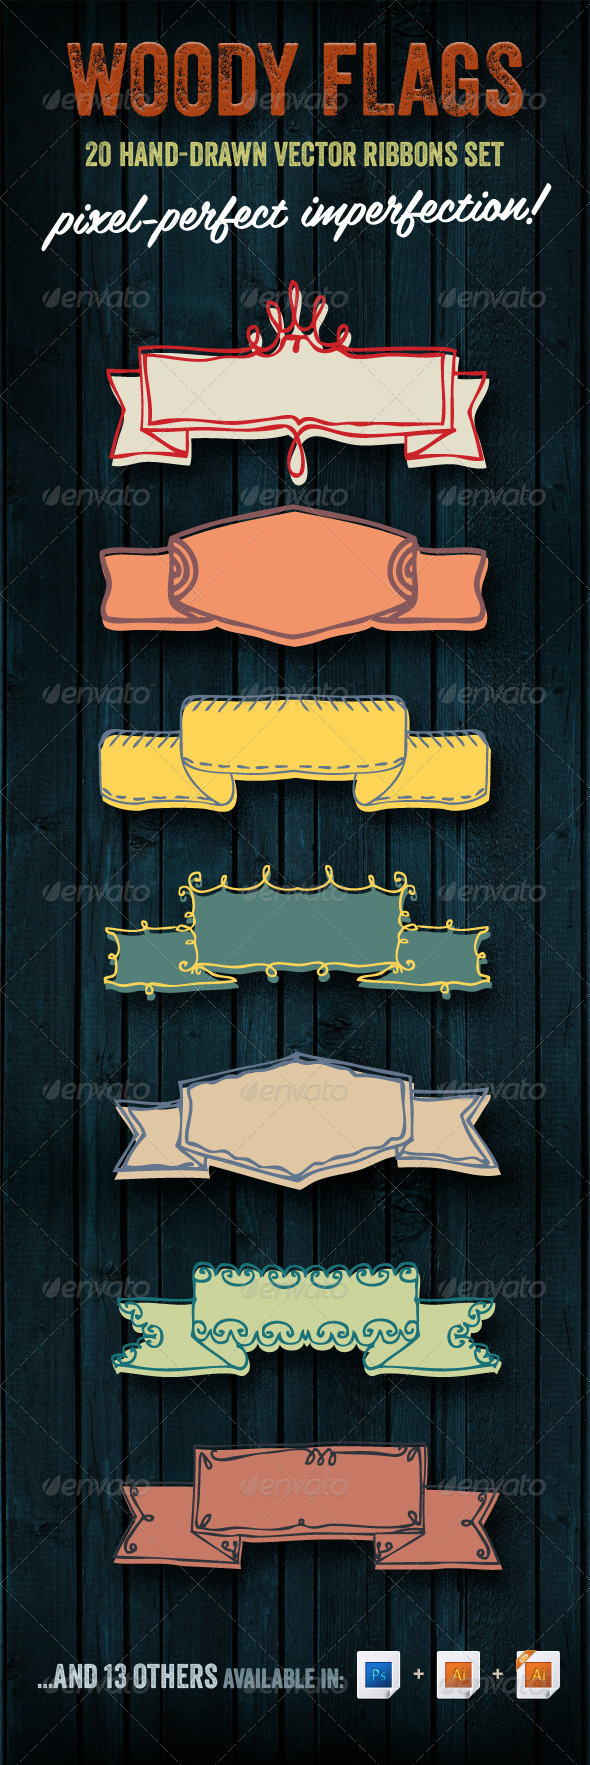 GraphicRiver Woody Flags 20 Hand-drawn Vector Ribbons Set 3956358